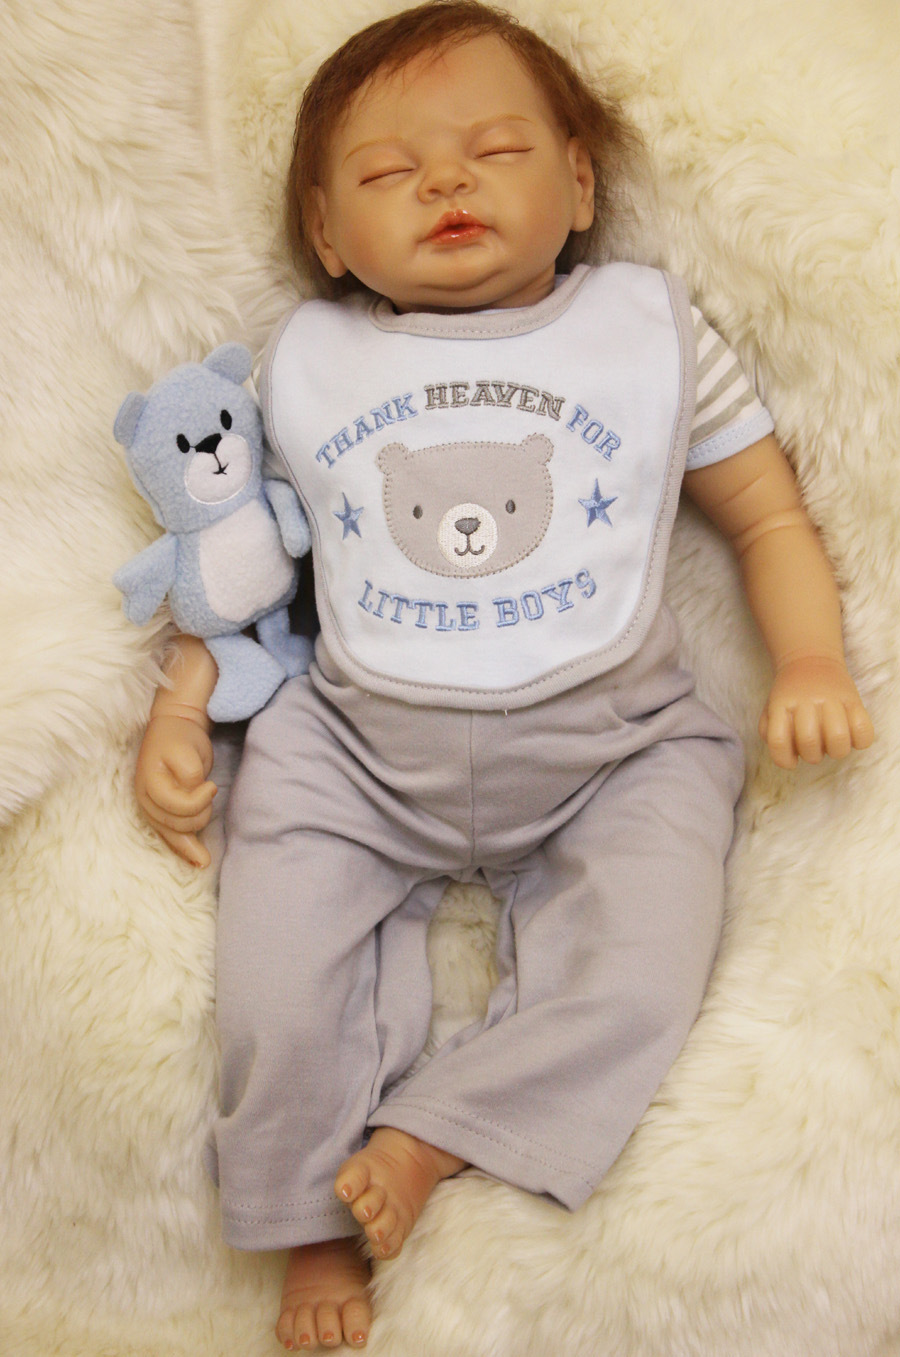 silicone reborn baby boy closed eyes 55cm awesome toys for girls 22inch bebe vinyl dolls for sale dolls toys for child hot sale hot sale toys 45cm pelucia hello kitty dolls toys for children girl gift baby toys plush classic toys brinquedos valentine gifts